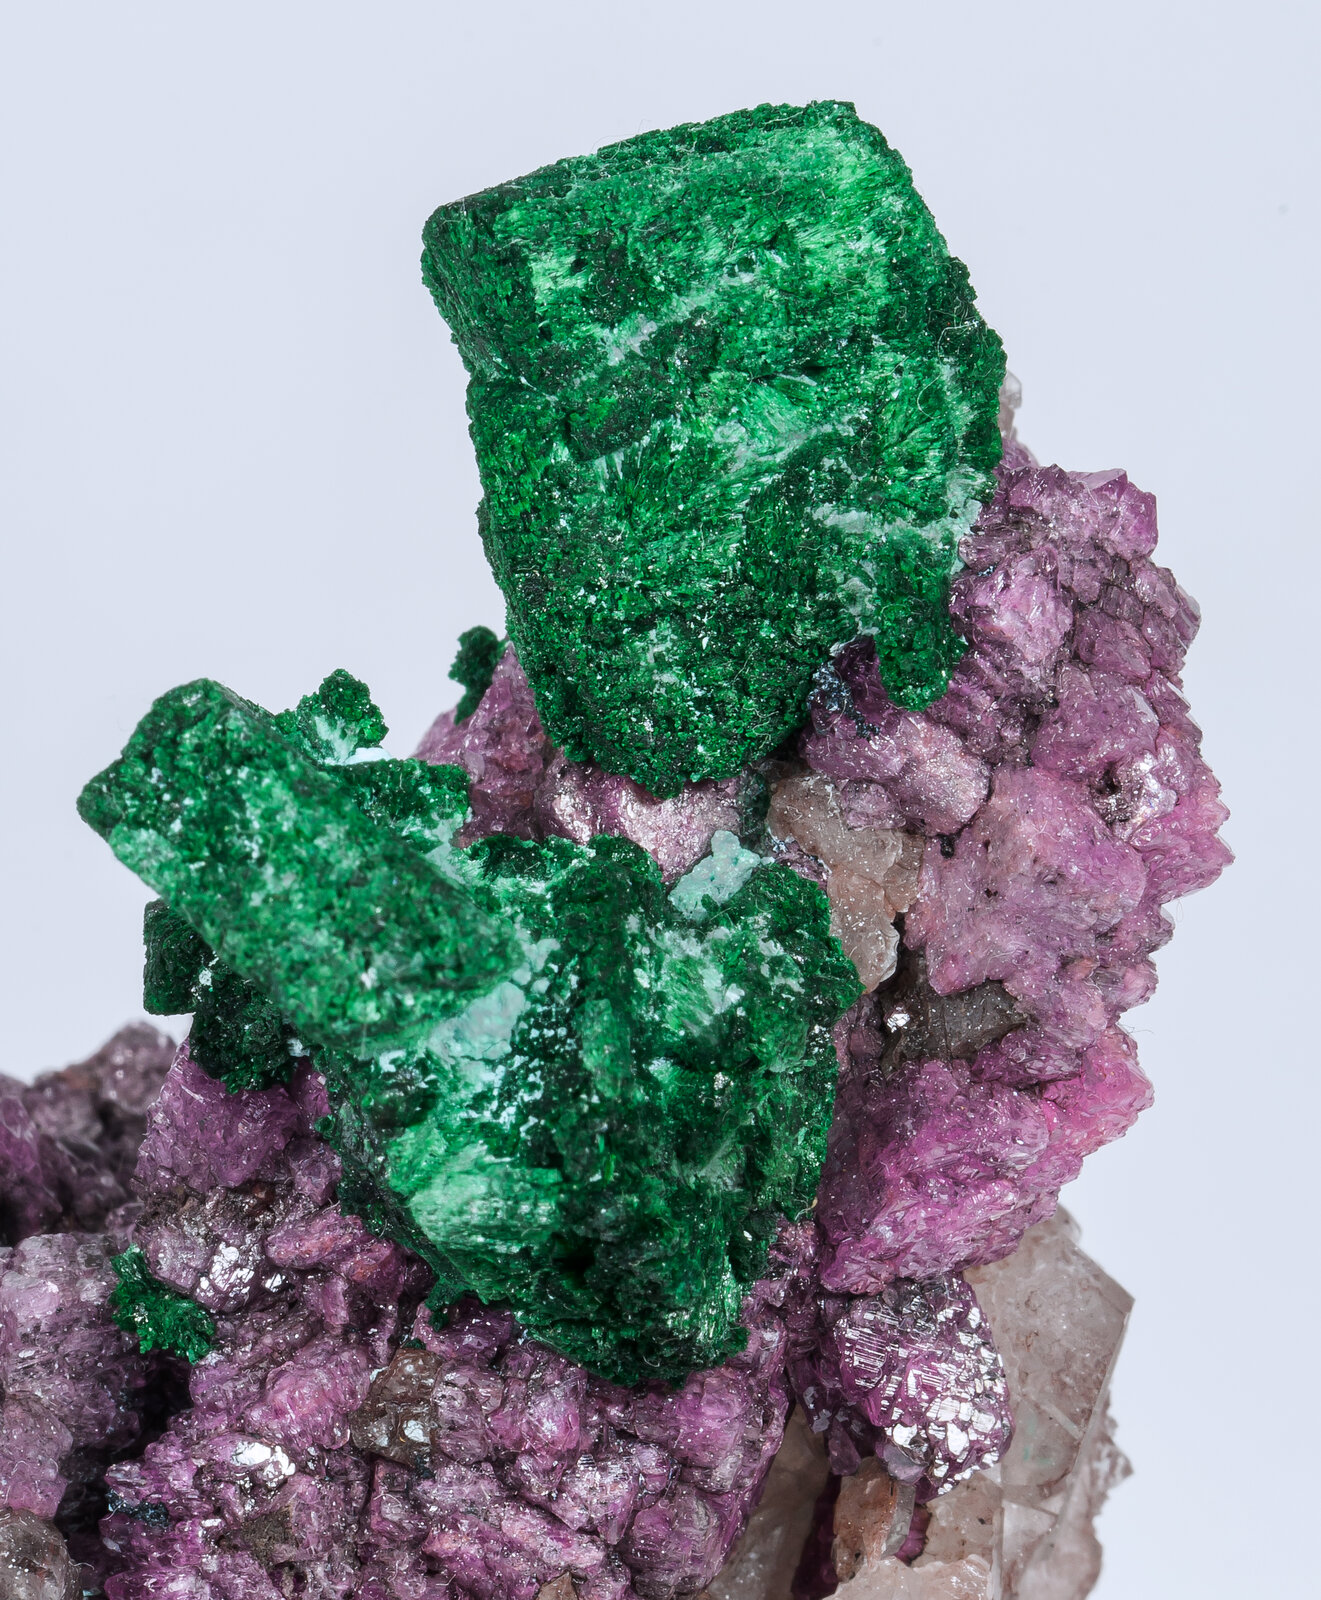 specimens/s_imagesAM8/Malachite-TZ91AM8d2.jpg